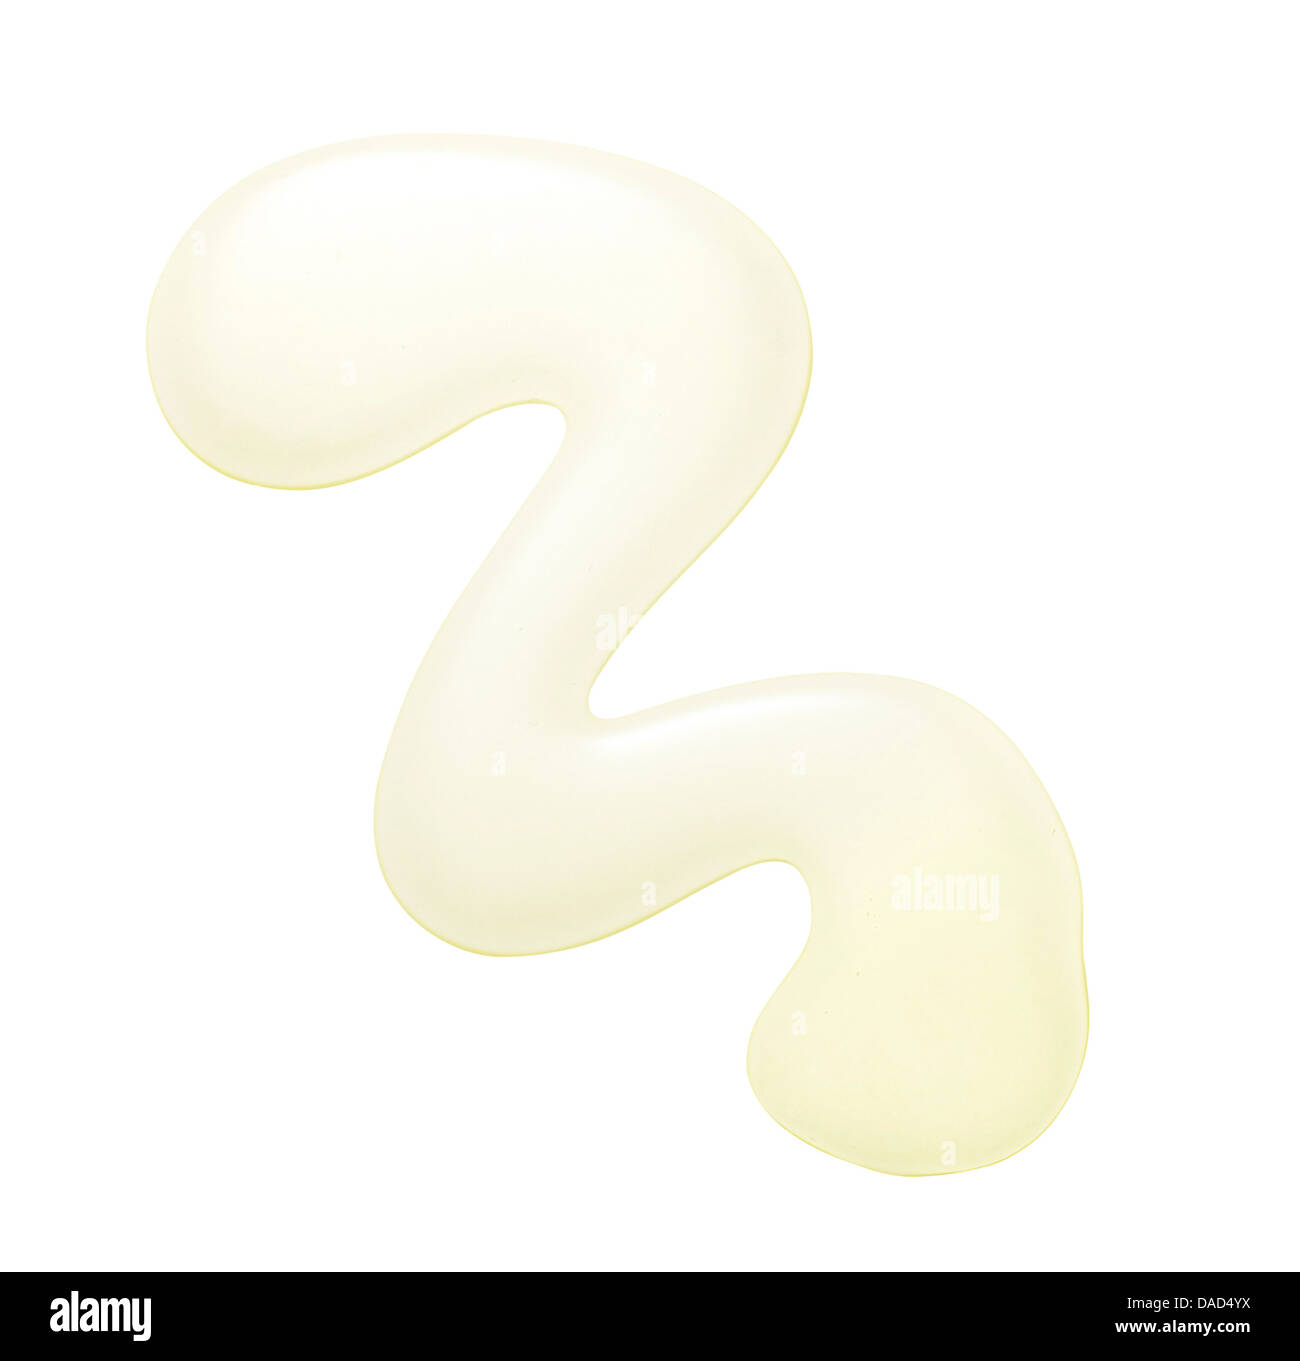 beige yellow beauty cream cut out onto a white background - Stock Image